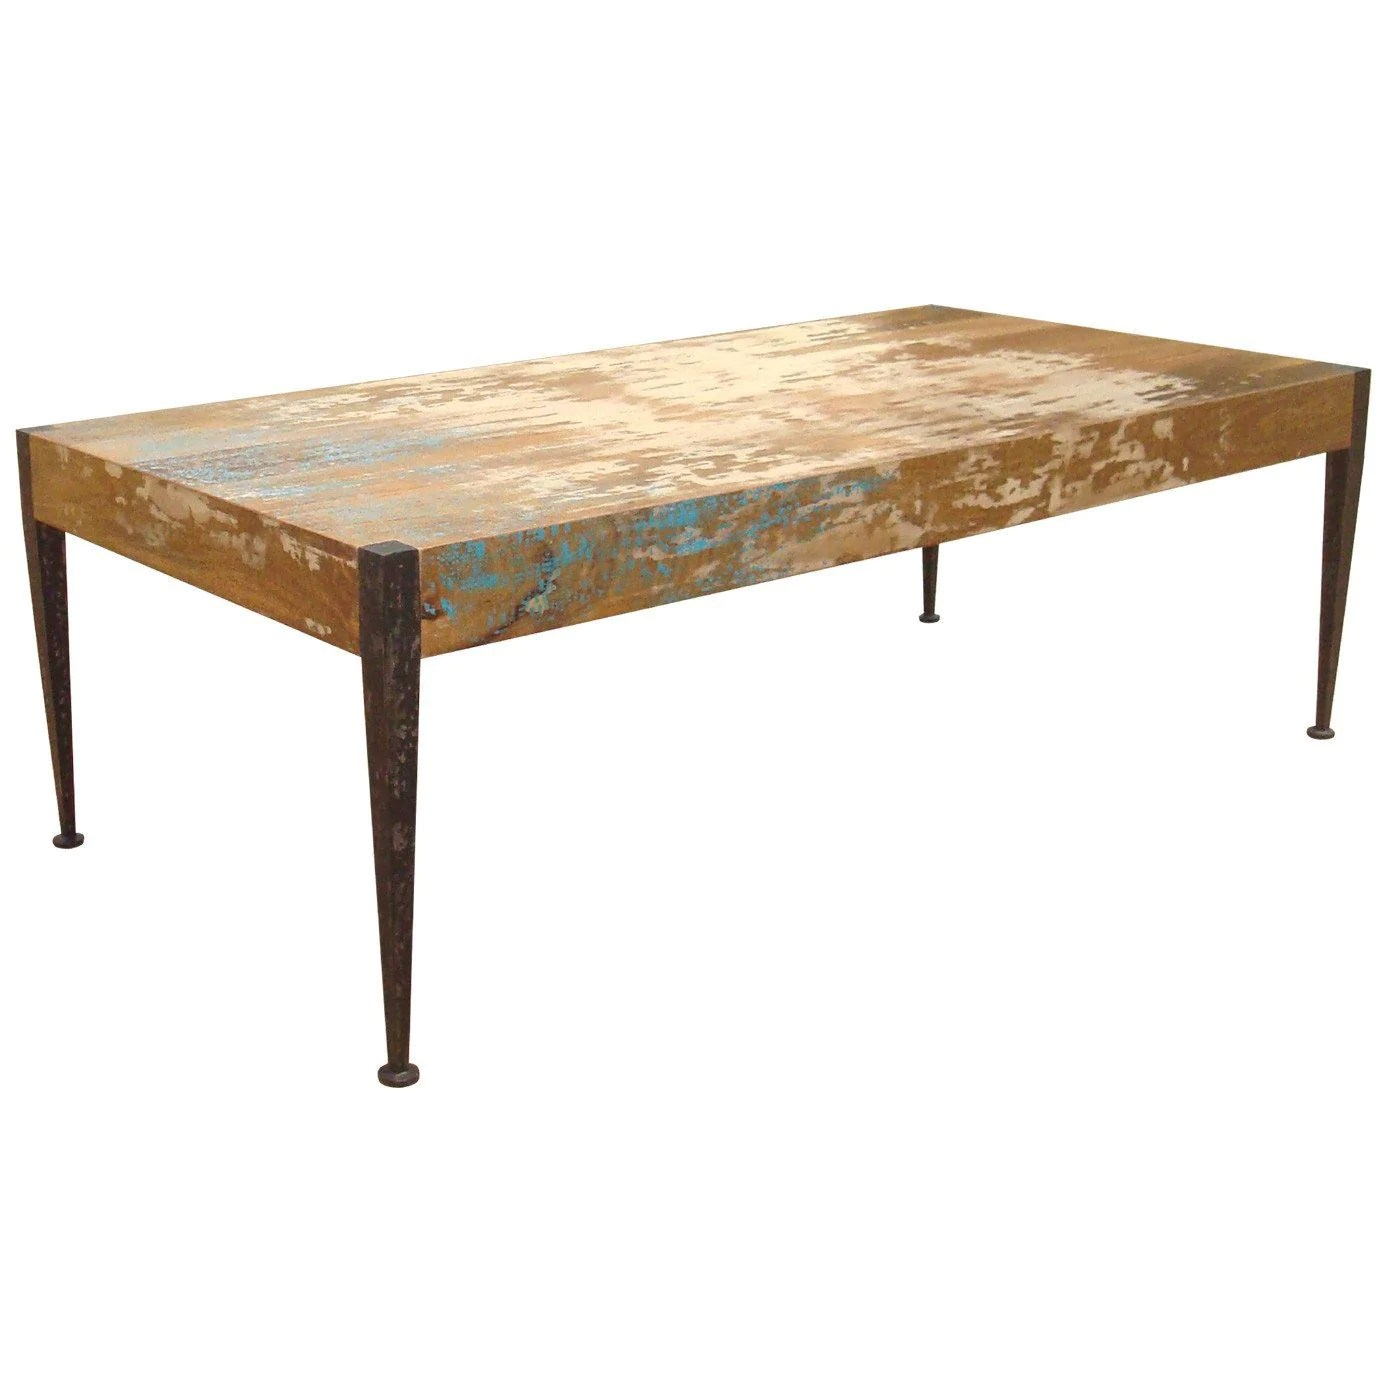 Alluring Coffee Tables Moes Home Collection Ax 1001 37 Astoria Rustic Industrial Unfinished Distressed Table Mango Wood Iron Leg 849043014946 711 Distressed Coffee Table Images Distressed Coffee Table curbed Distressed Coffee Table